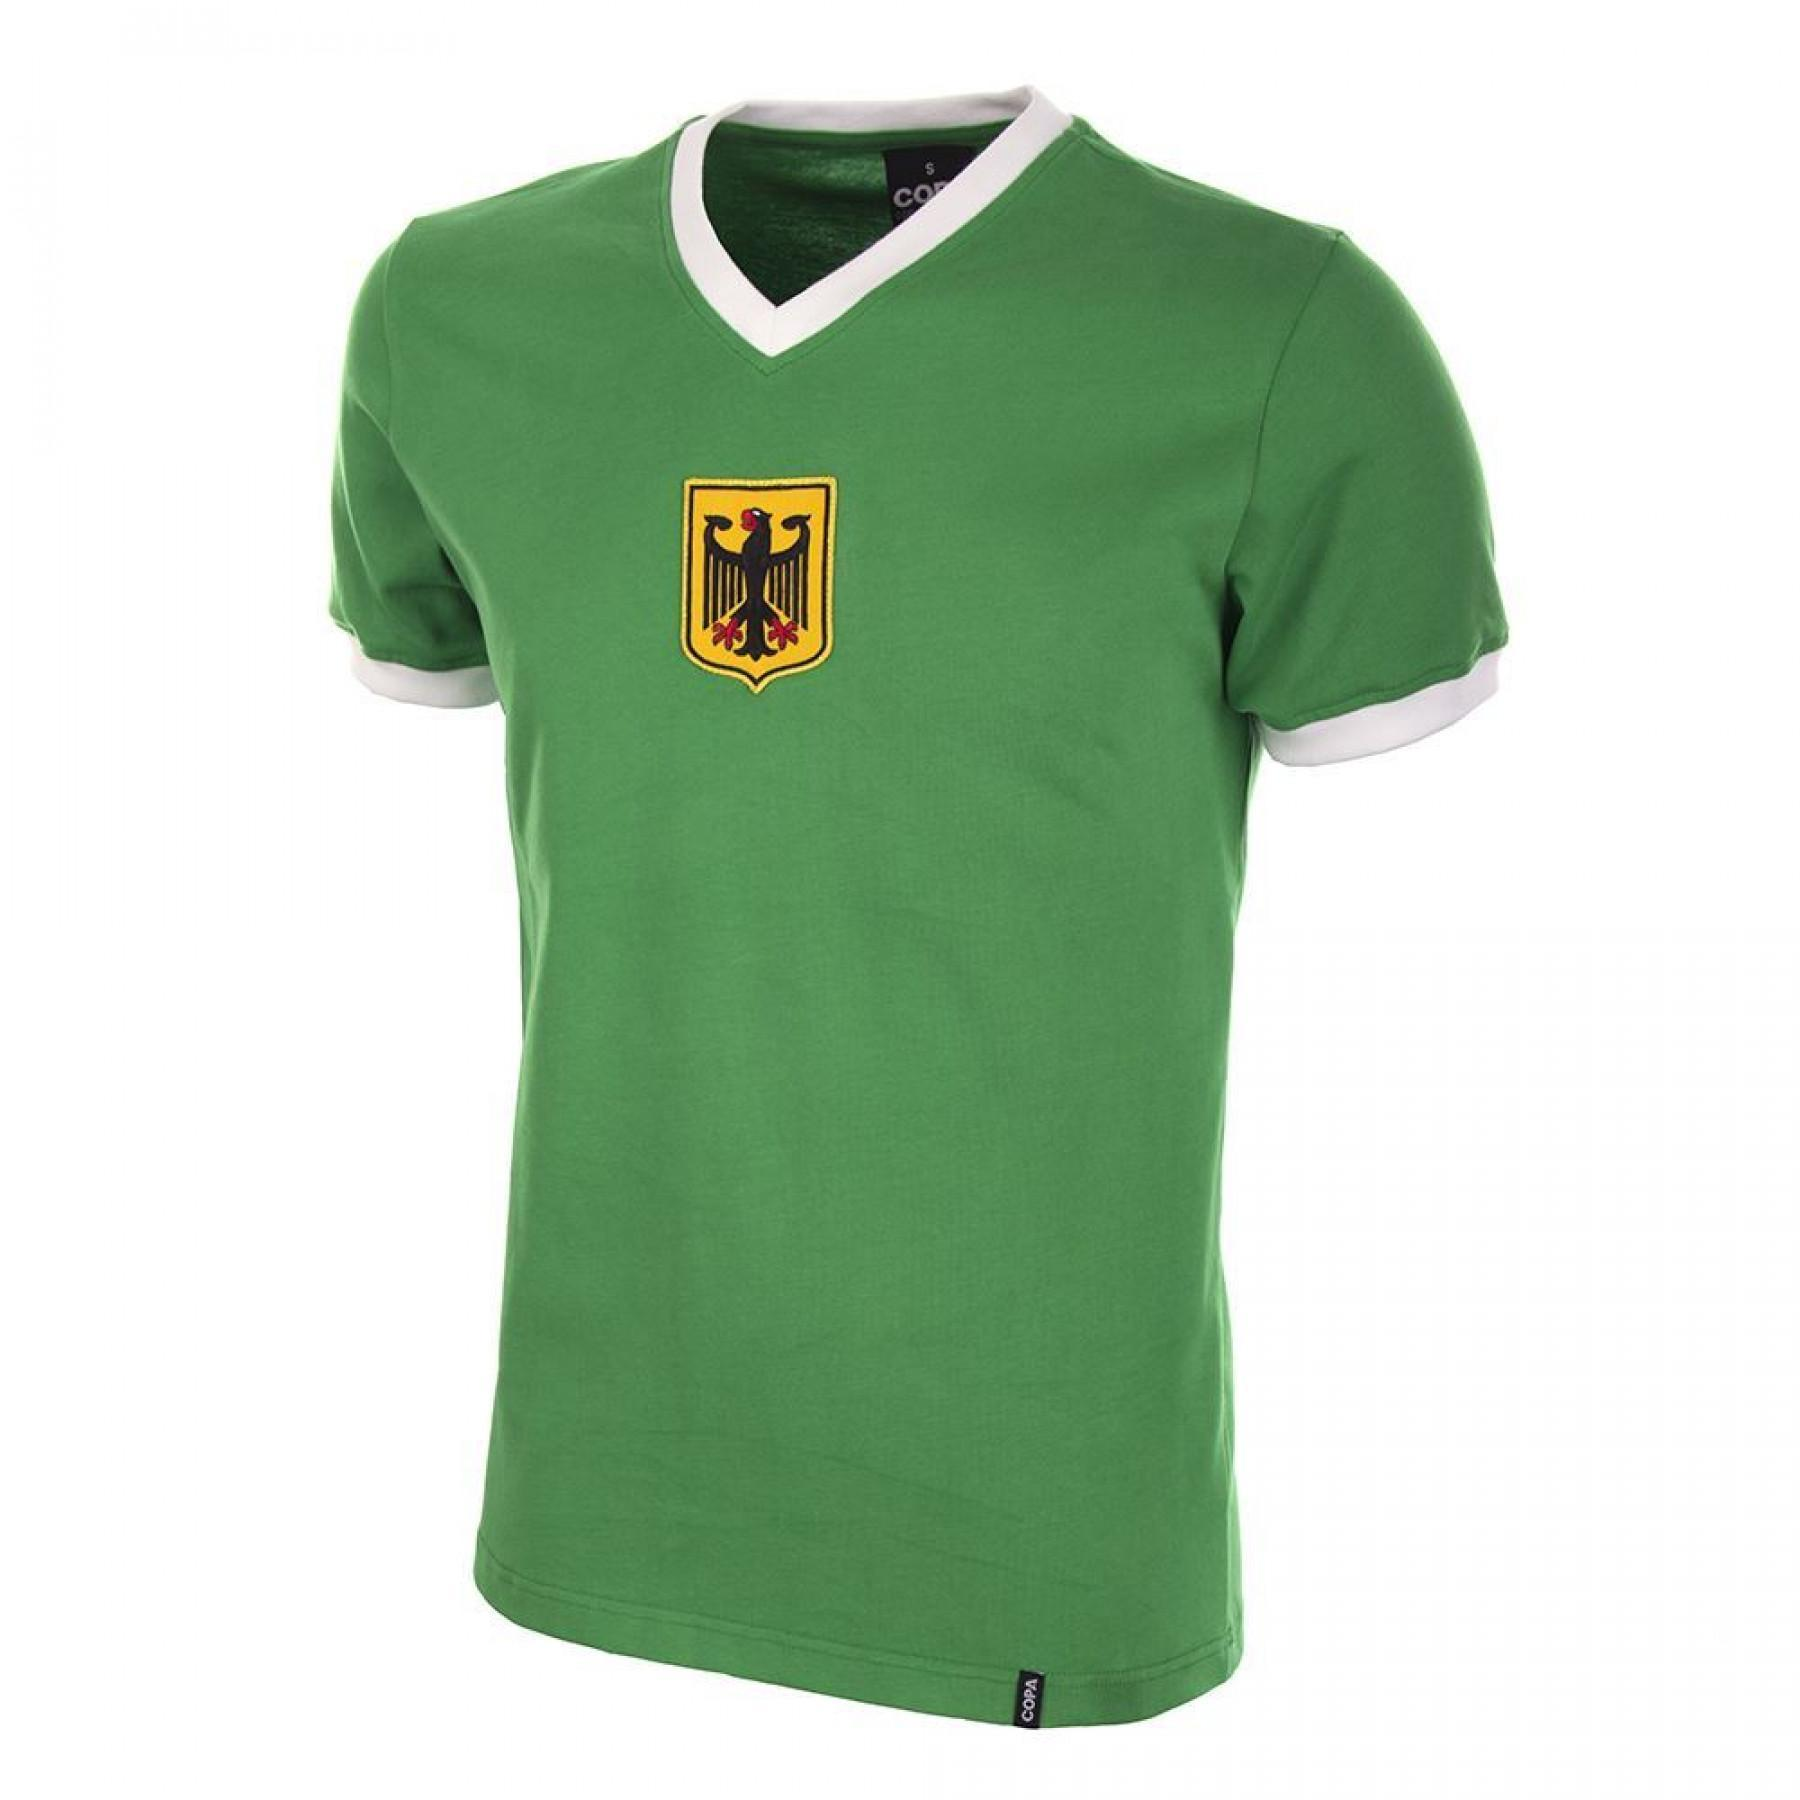 Away Shirt West Germany's 1970